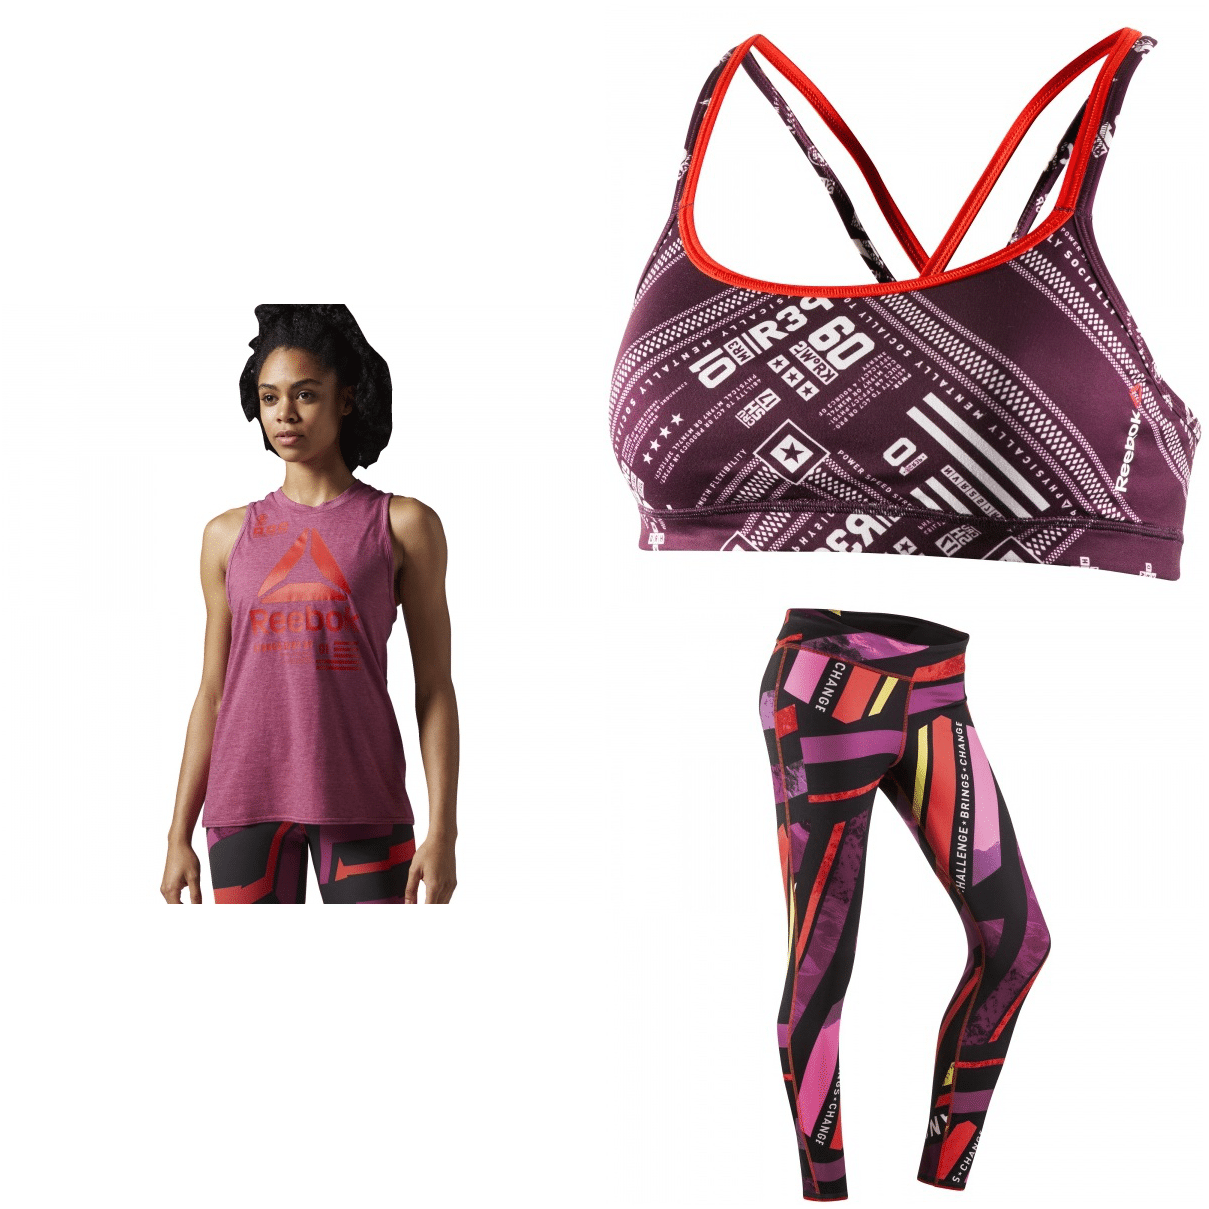 05872_Reebok_One_Series_Muscle_Tank__1-side